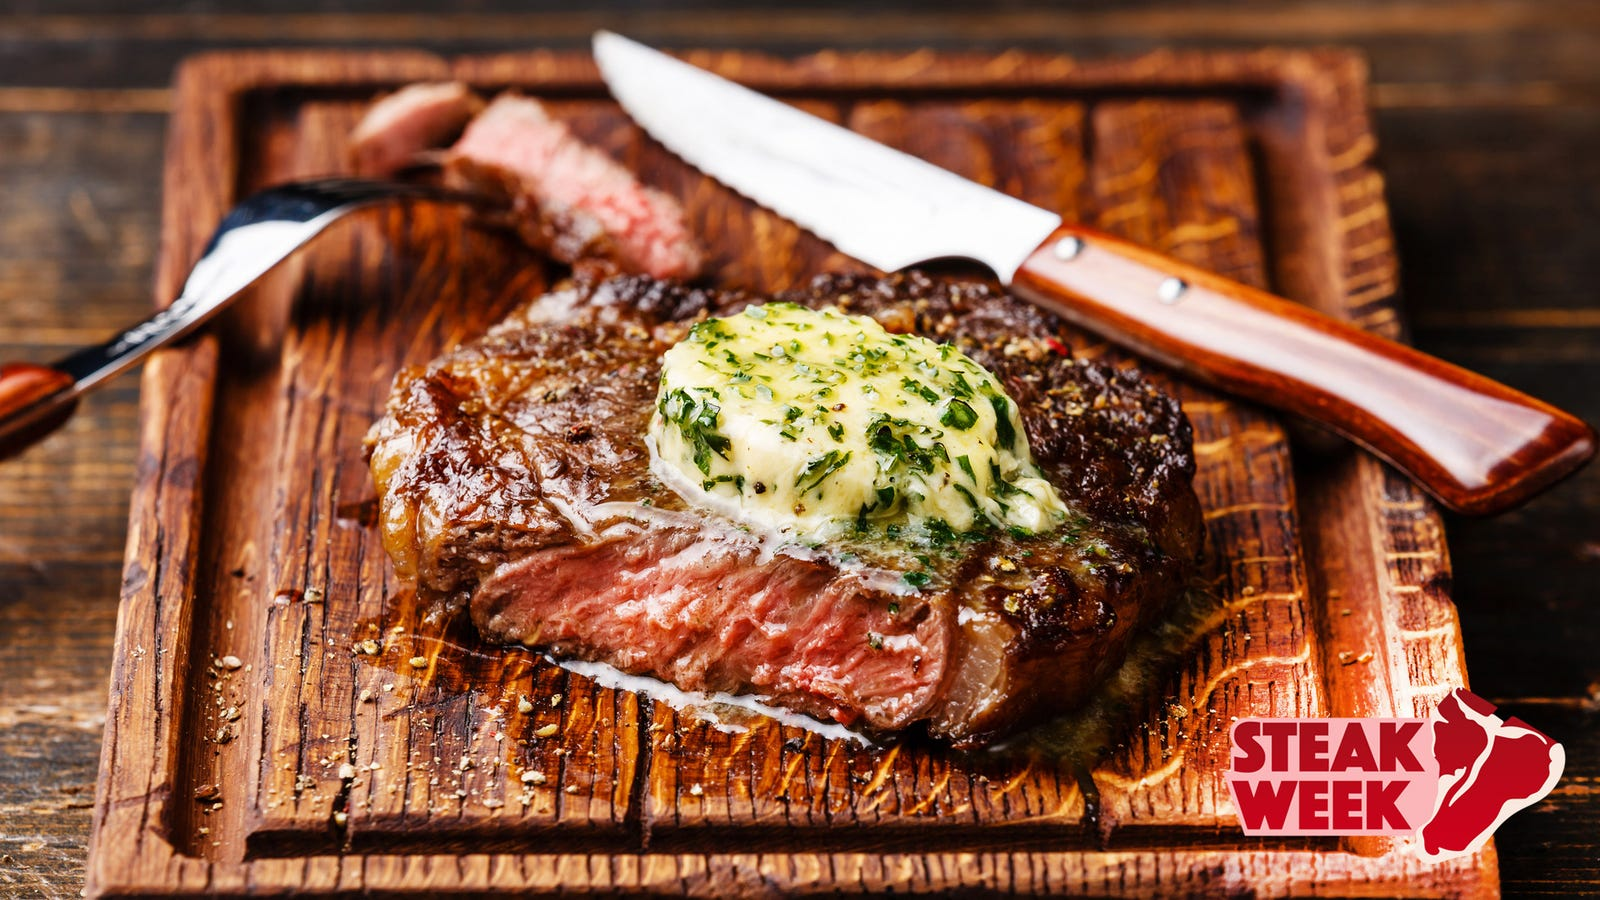 Tell us what's the best sauce for steak